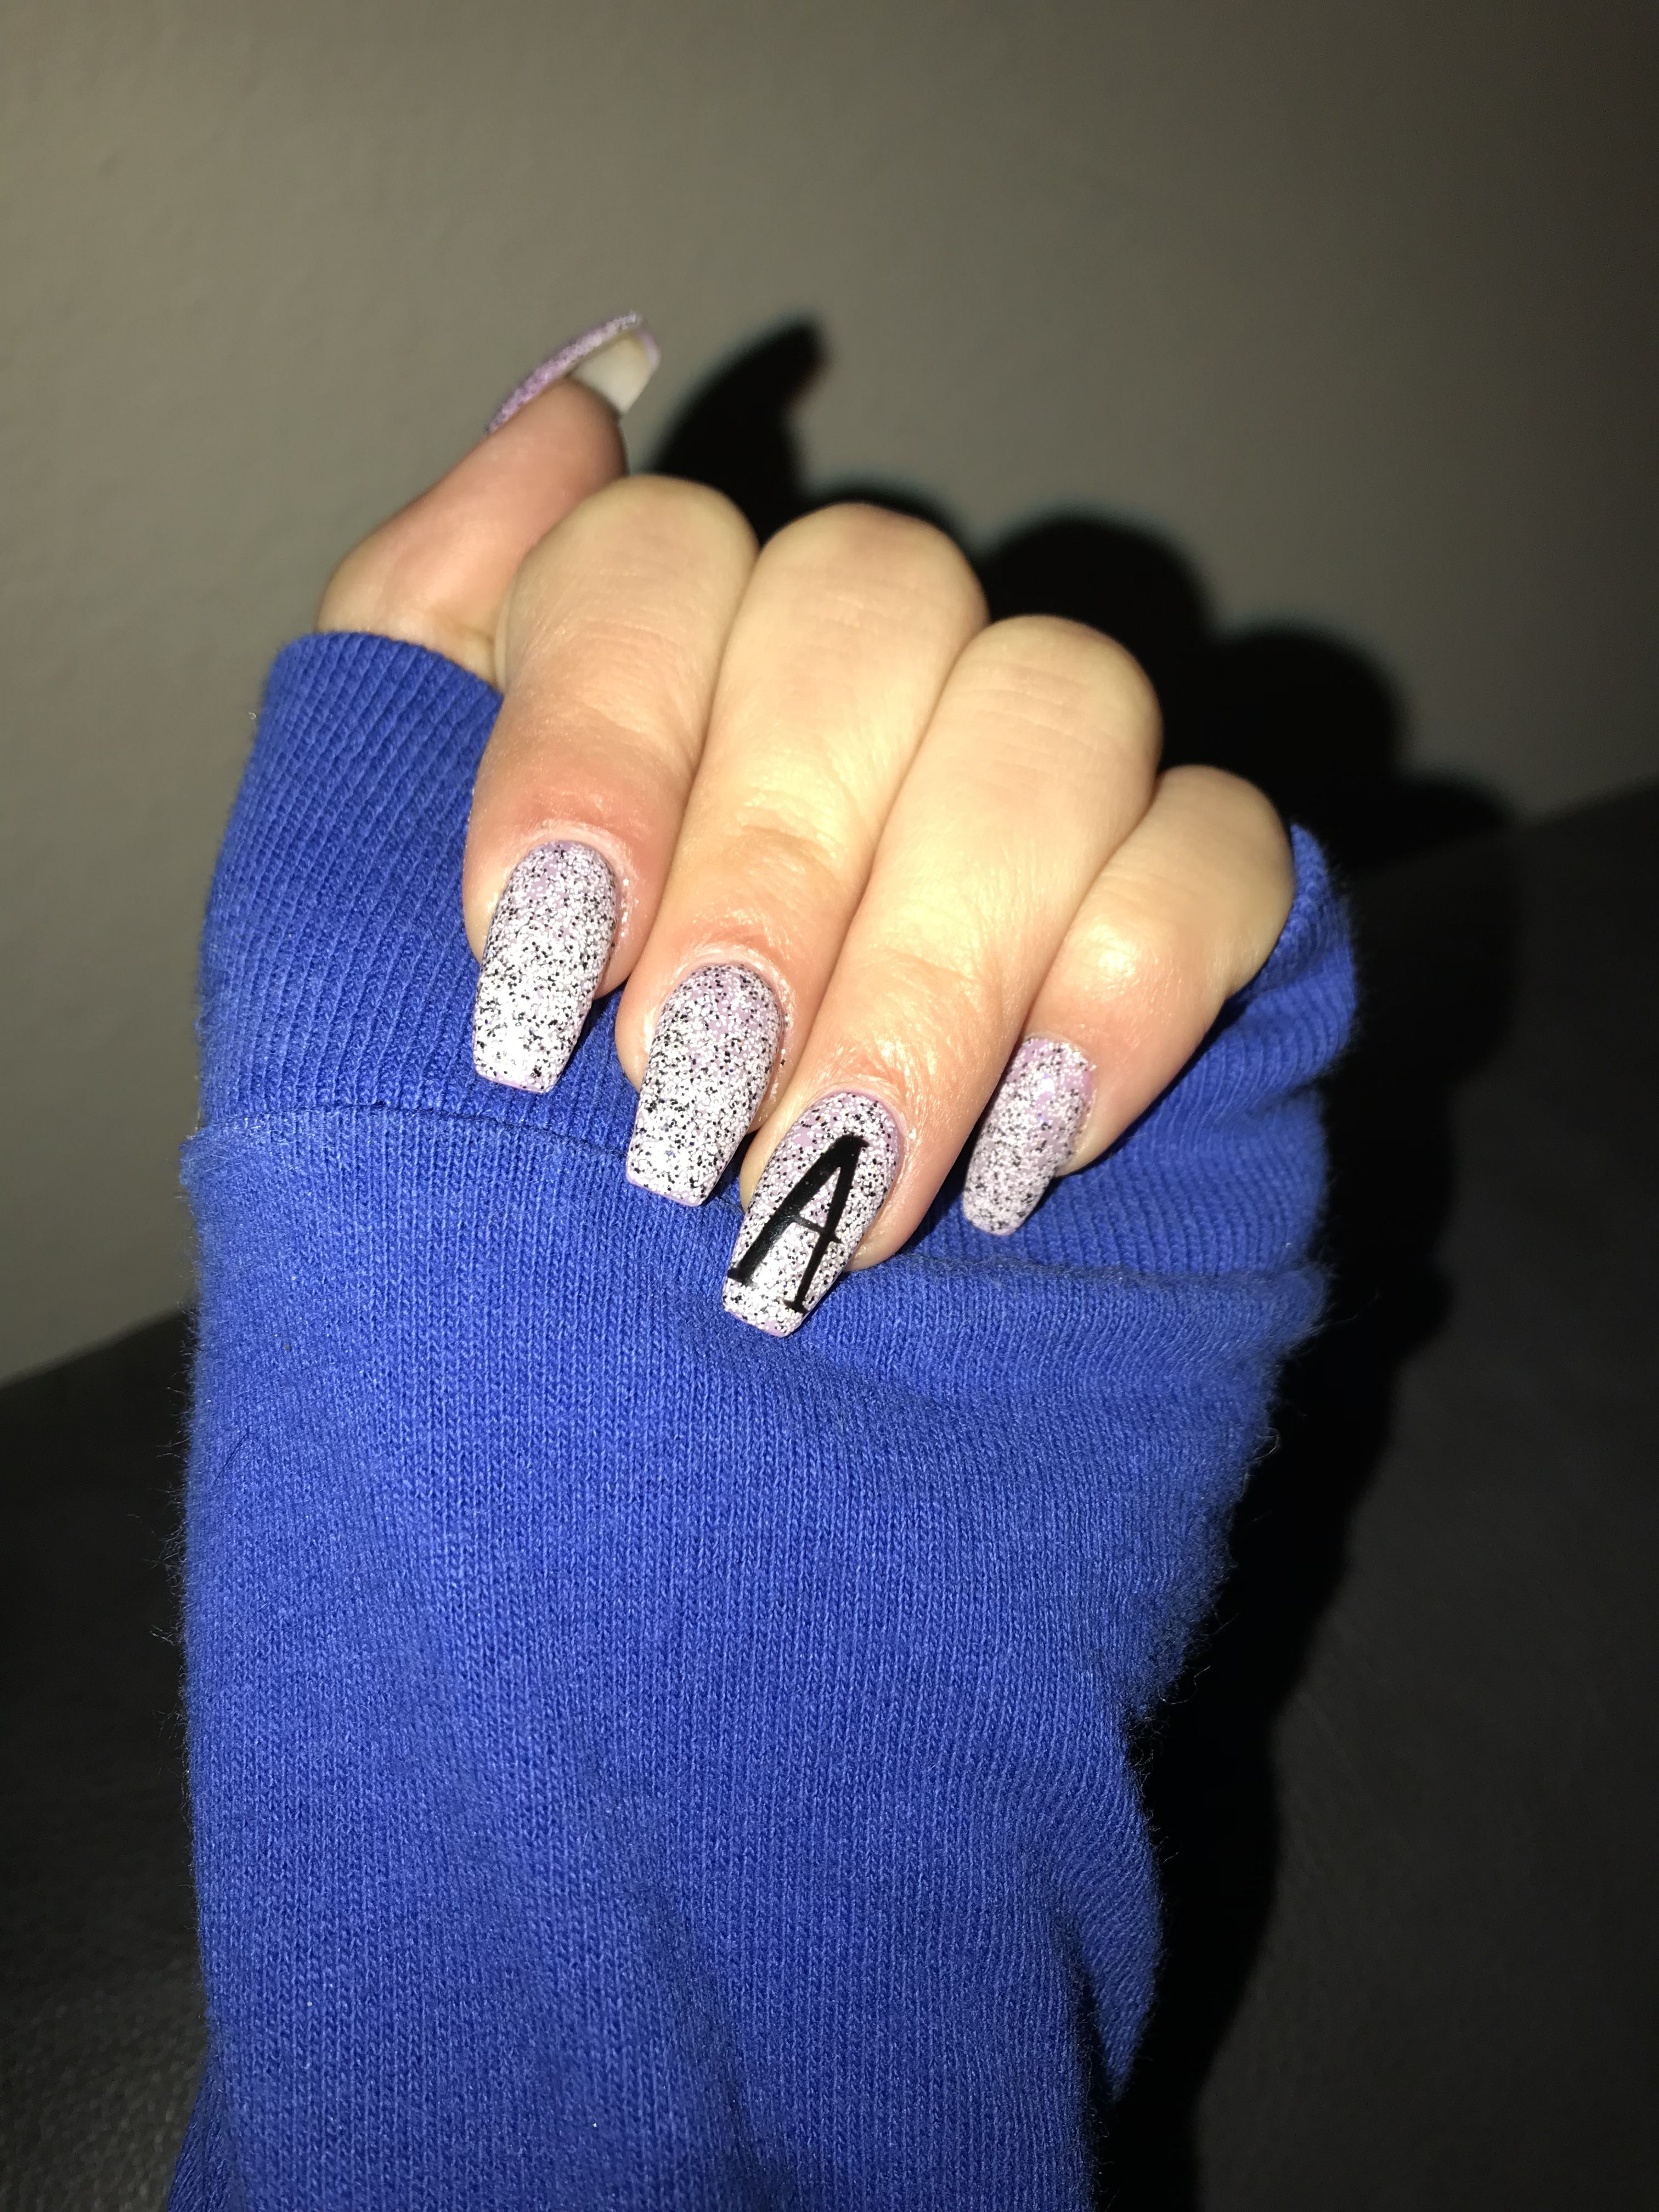 Initial Nails Nails Purple Nails Ombre Acrylic Nails